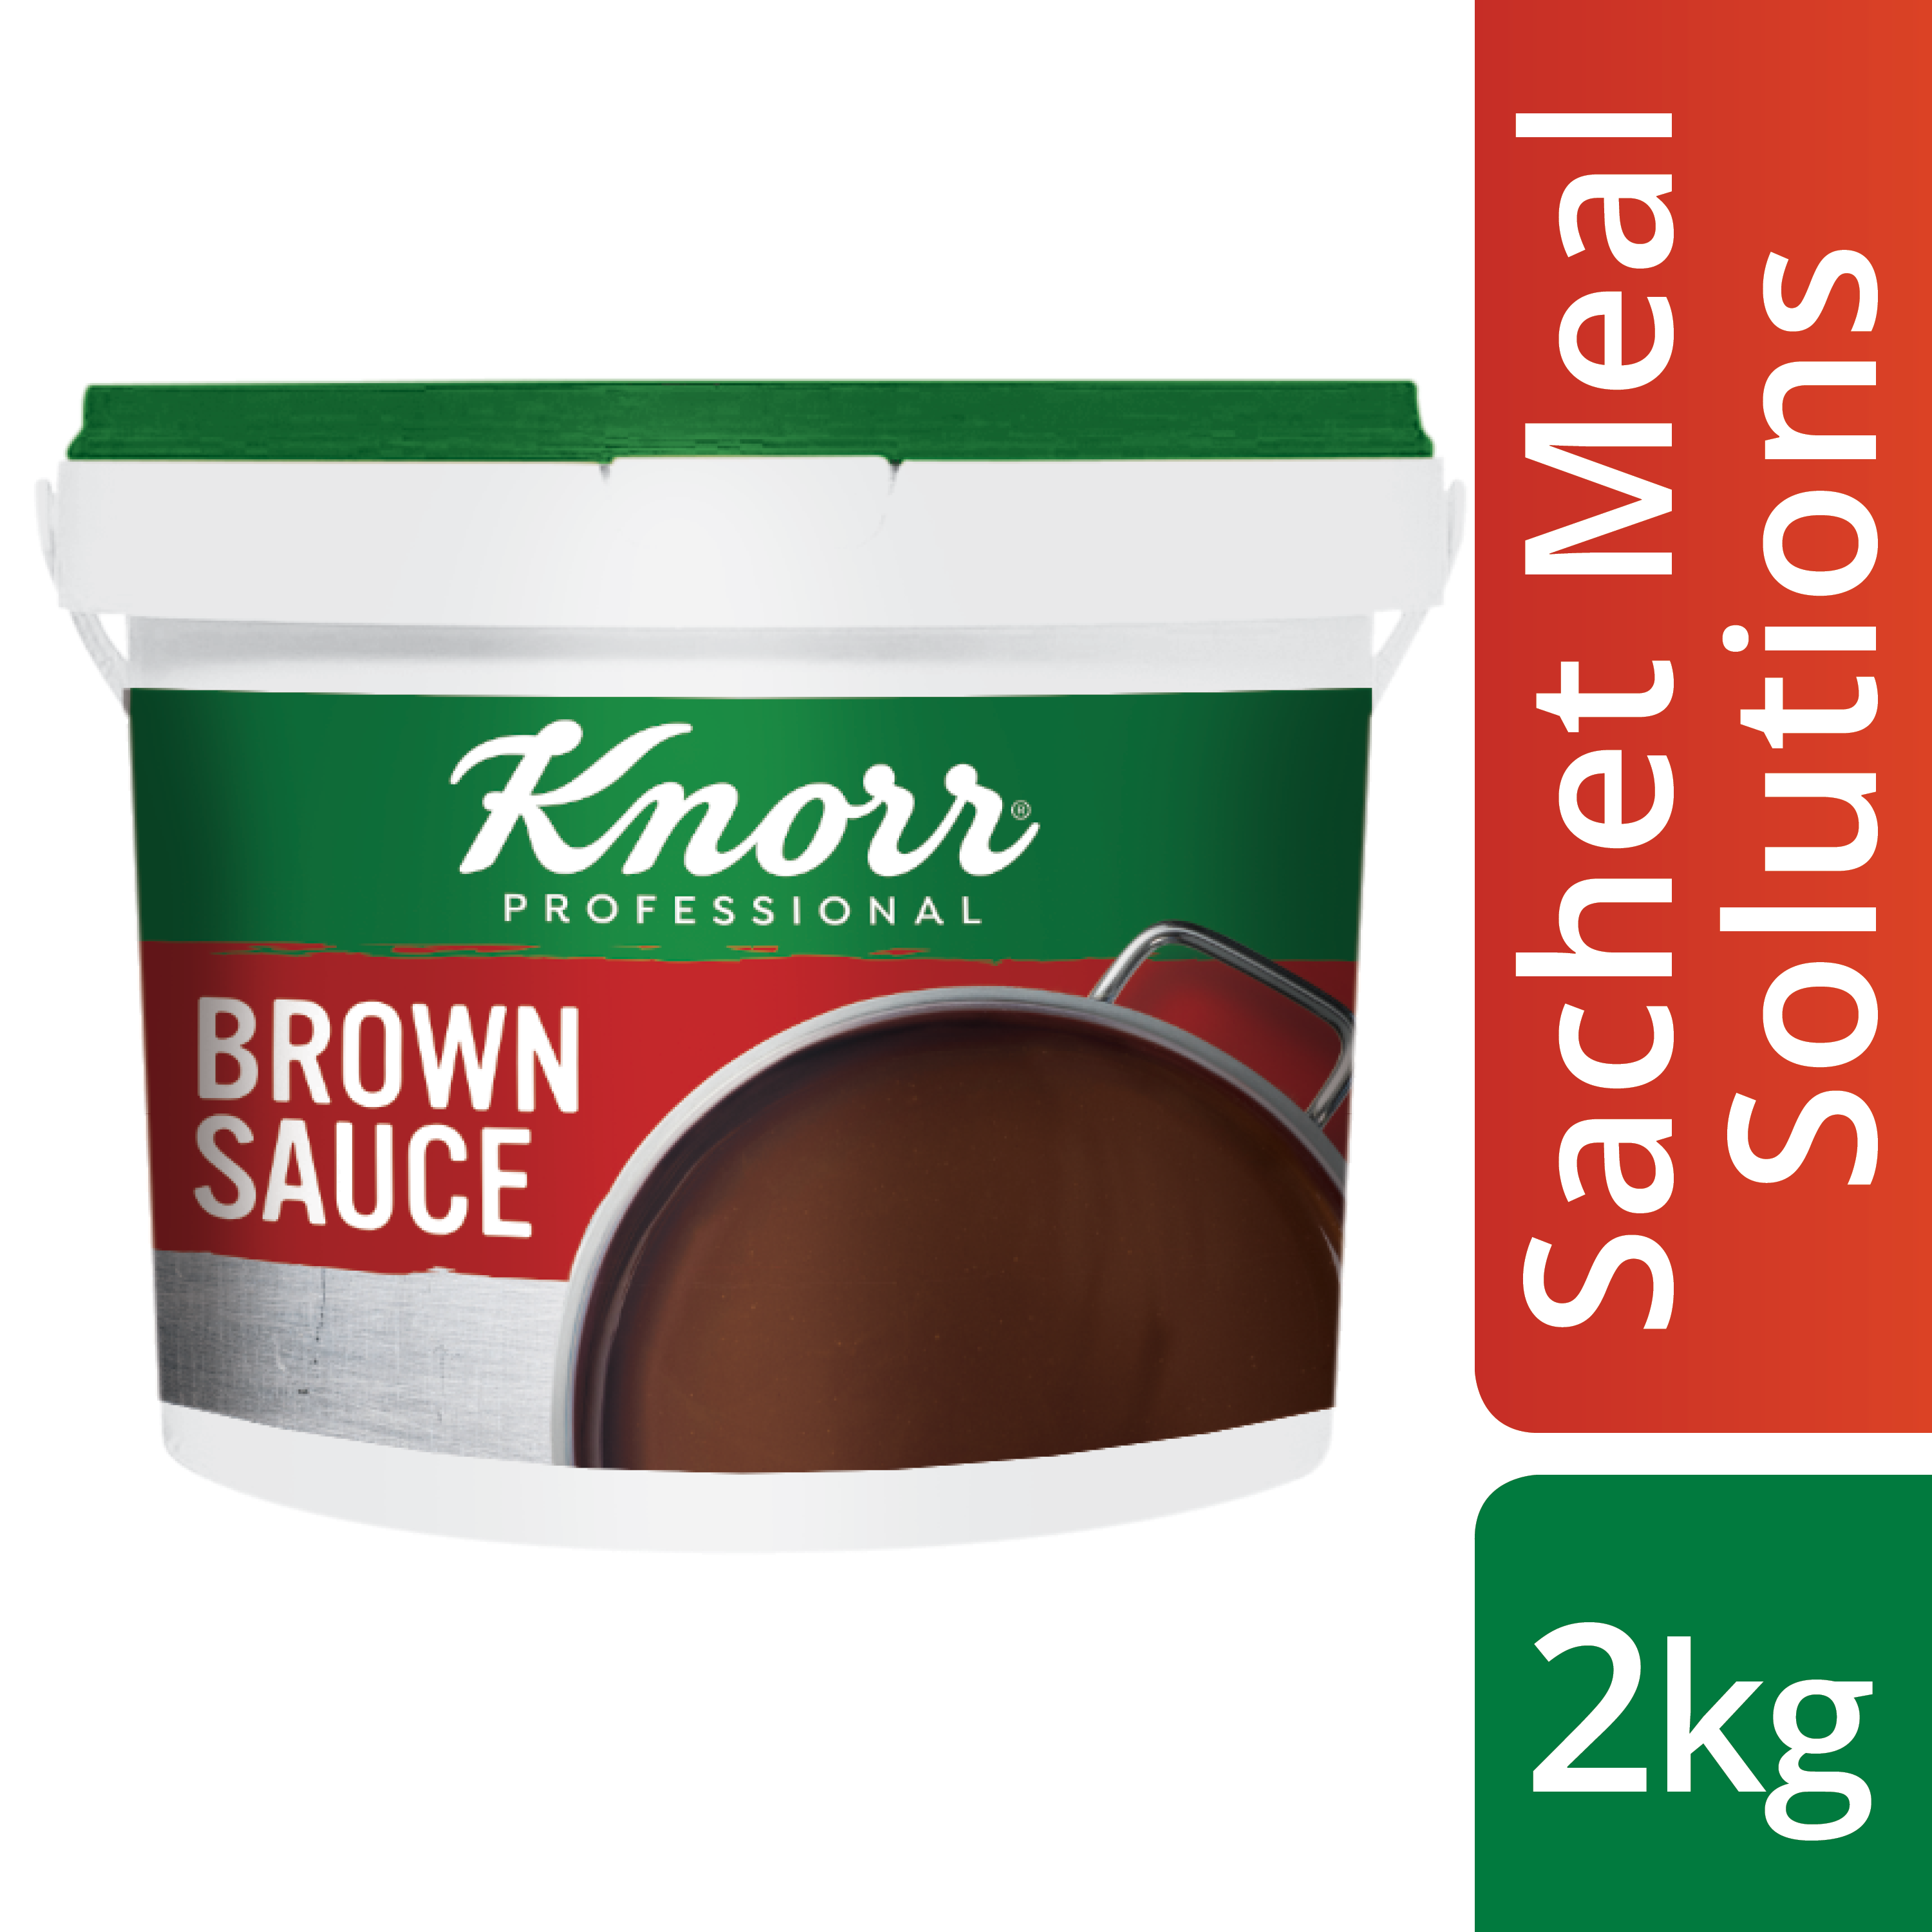 Knorr Brown Sauce 2kg - Here's a simple, pre-portioned sachet solution that gives you the consistency and flavour you need.